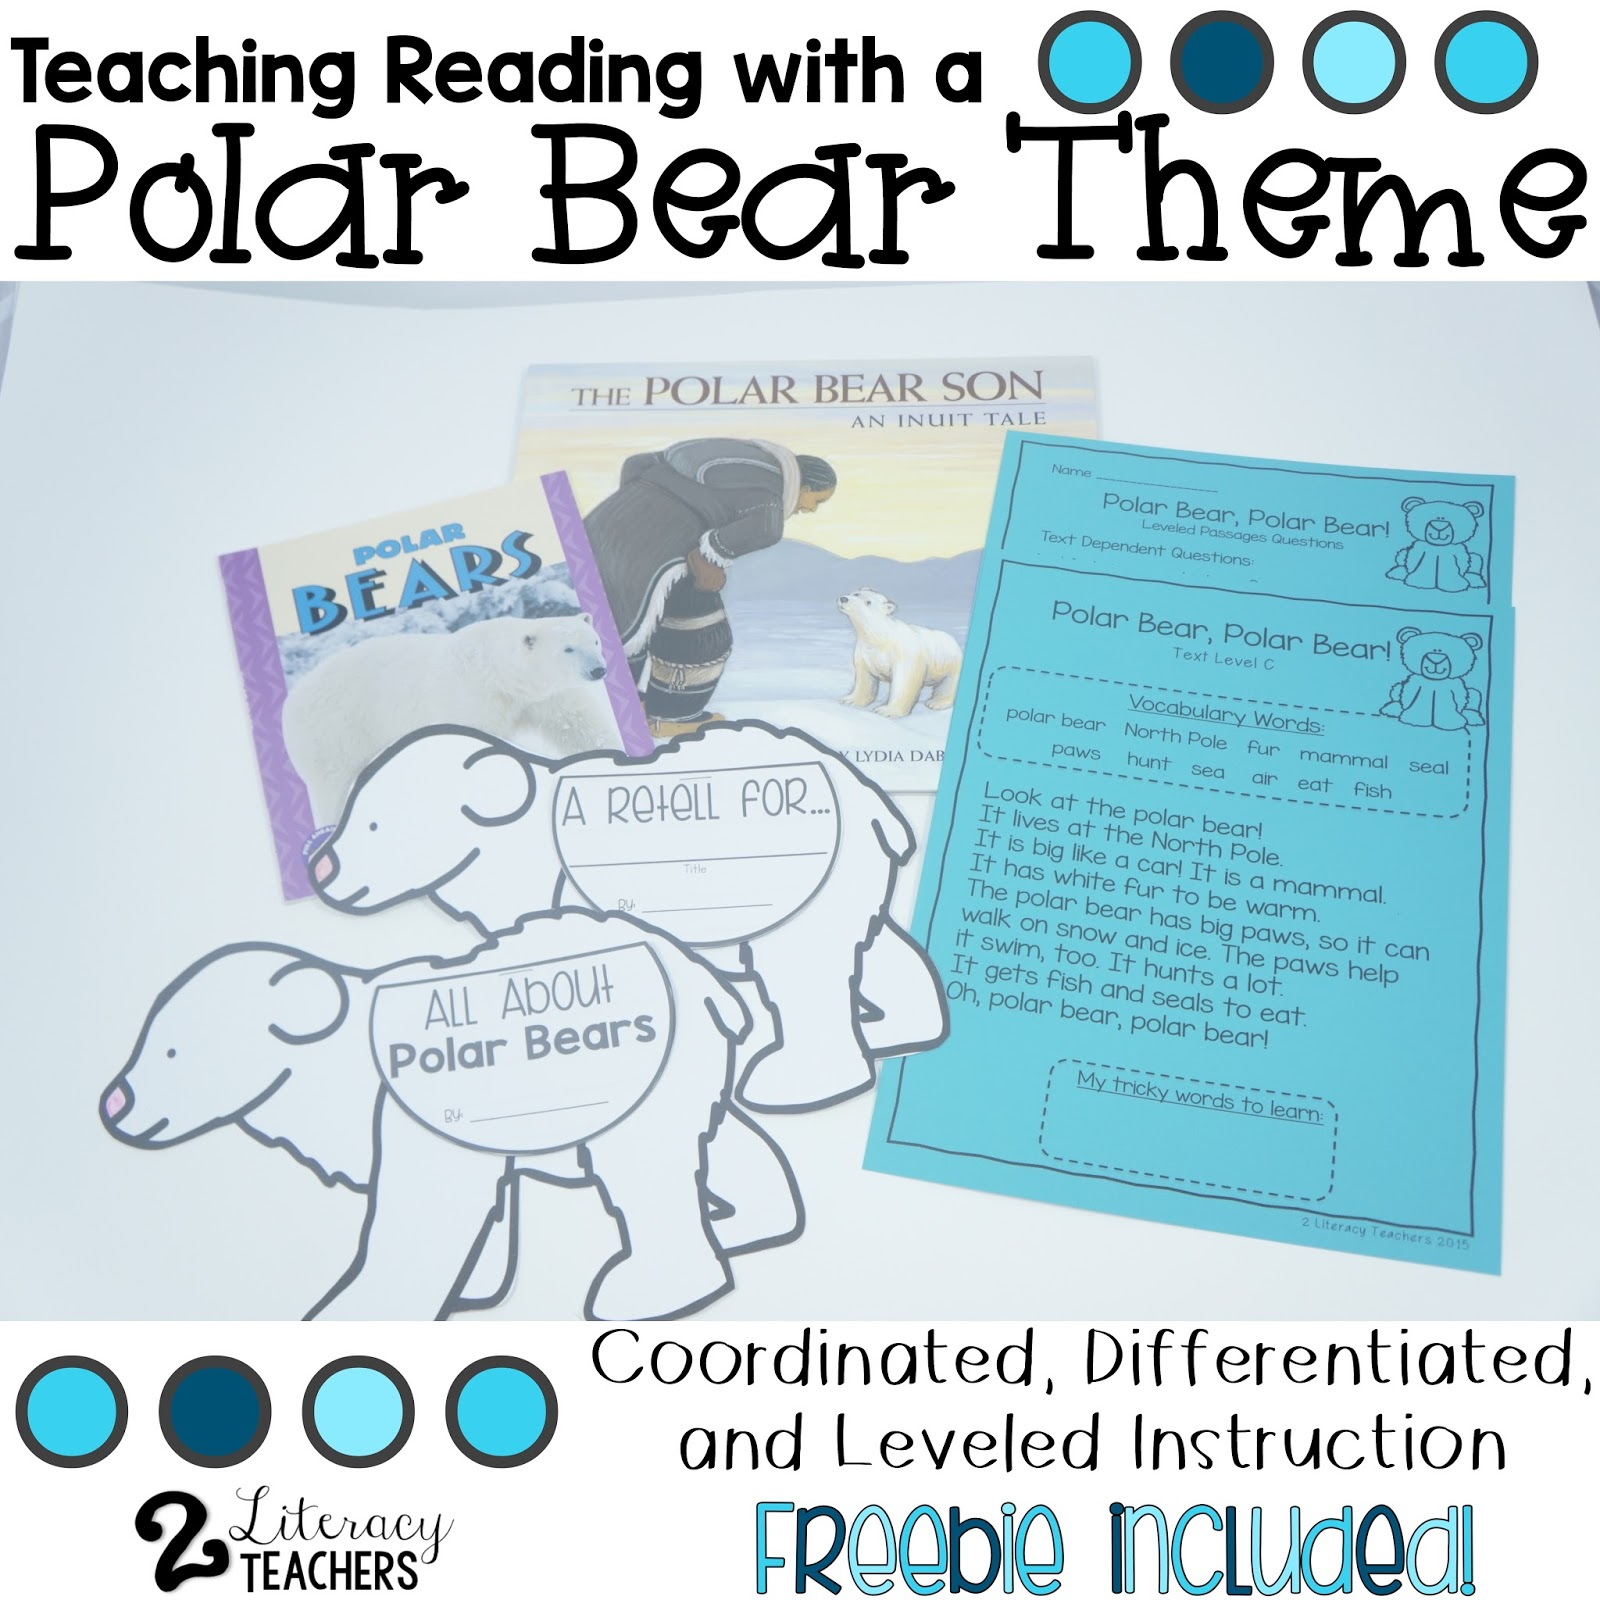 Teaching Reading with a Polar Bear Theme – Differentiated, and Leveled Instruction and a FREEBIE